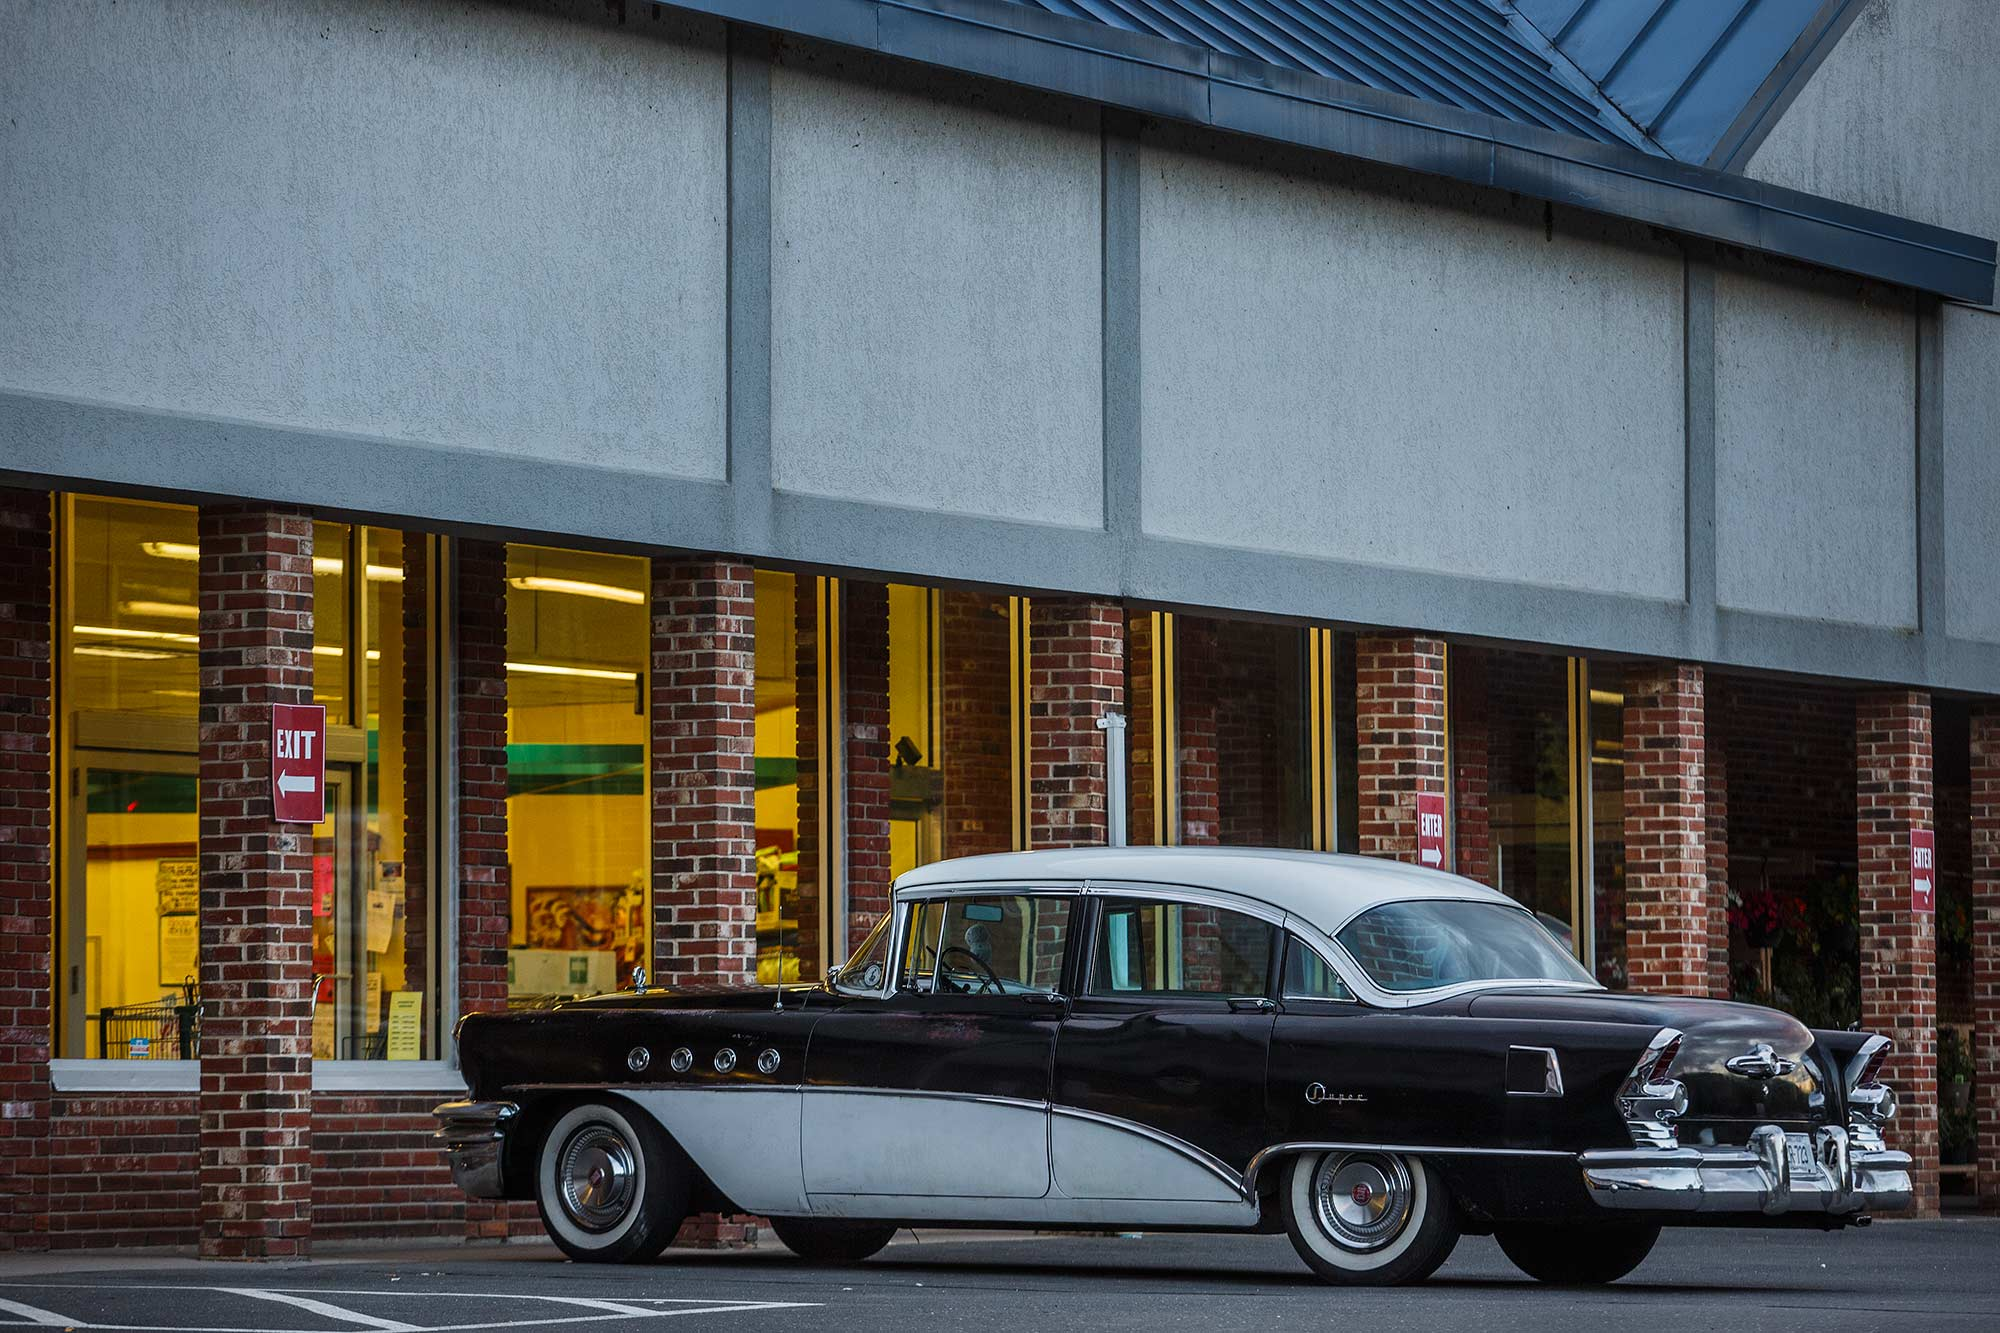 Fifty Something Buick, New Hartford, CT - 8/12/15